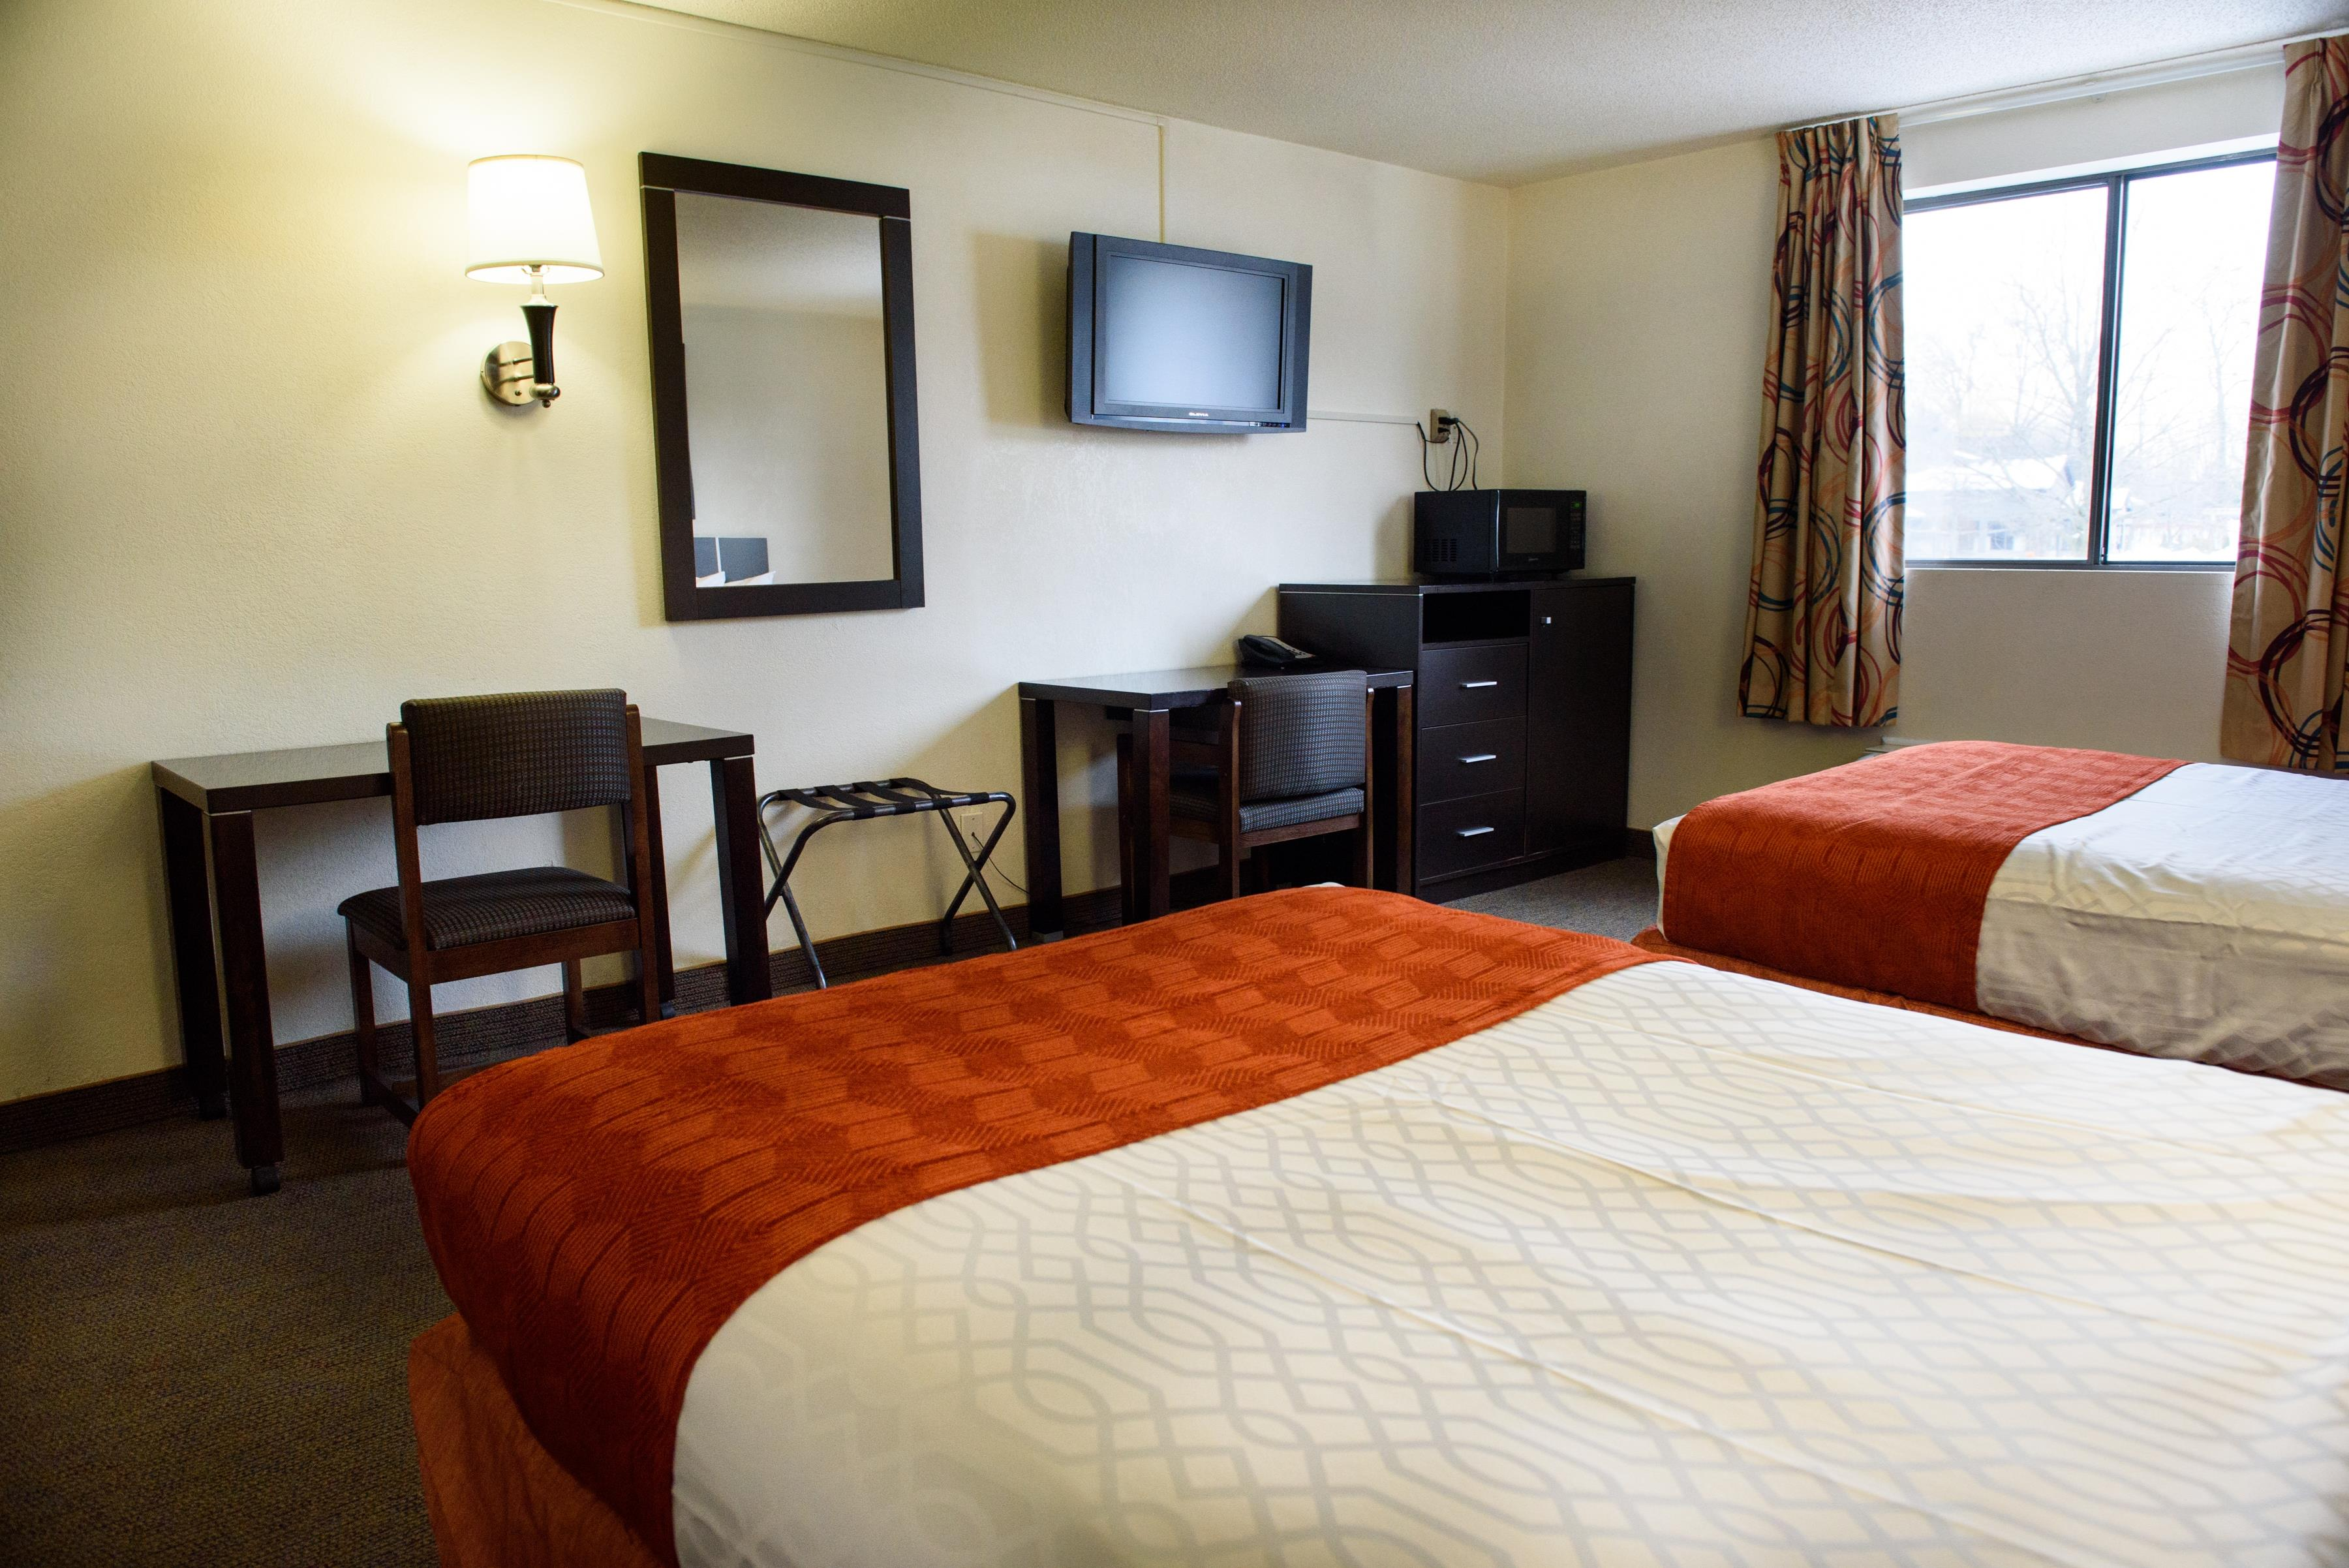 Americas Best Value Inn - New Paltz image 16